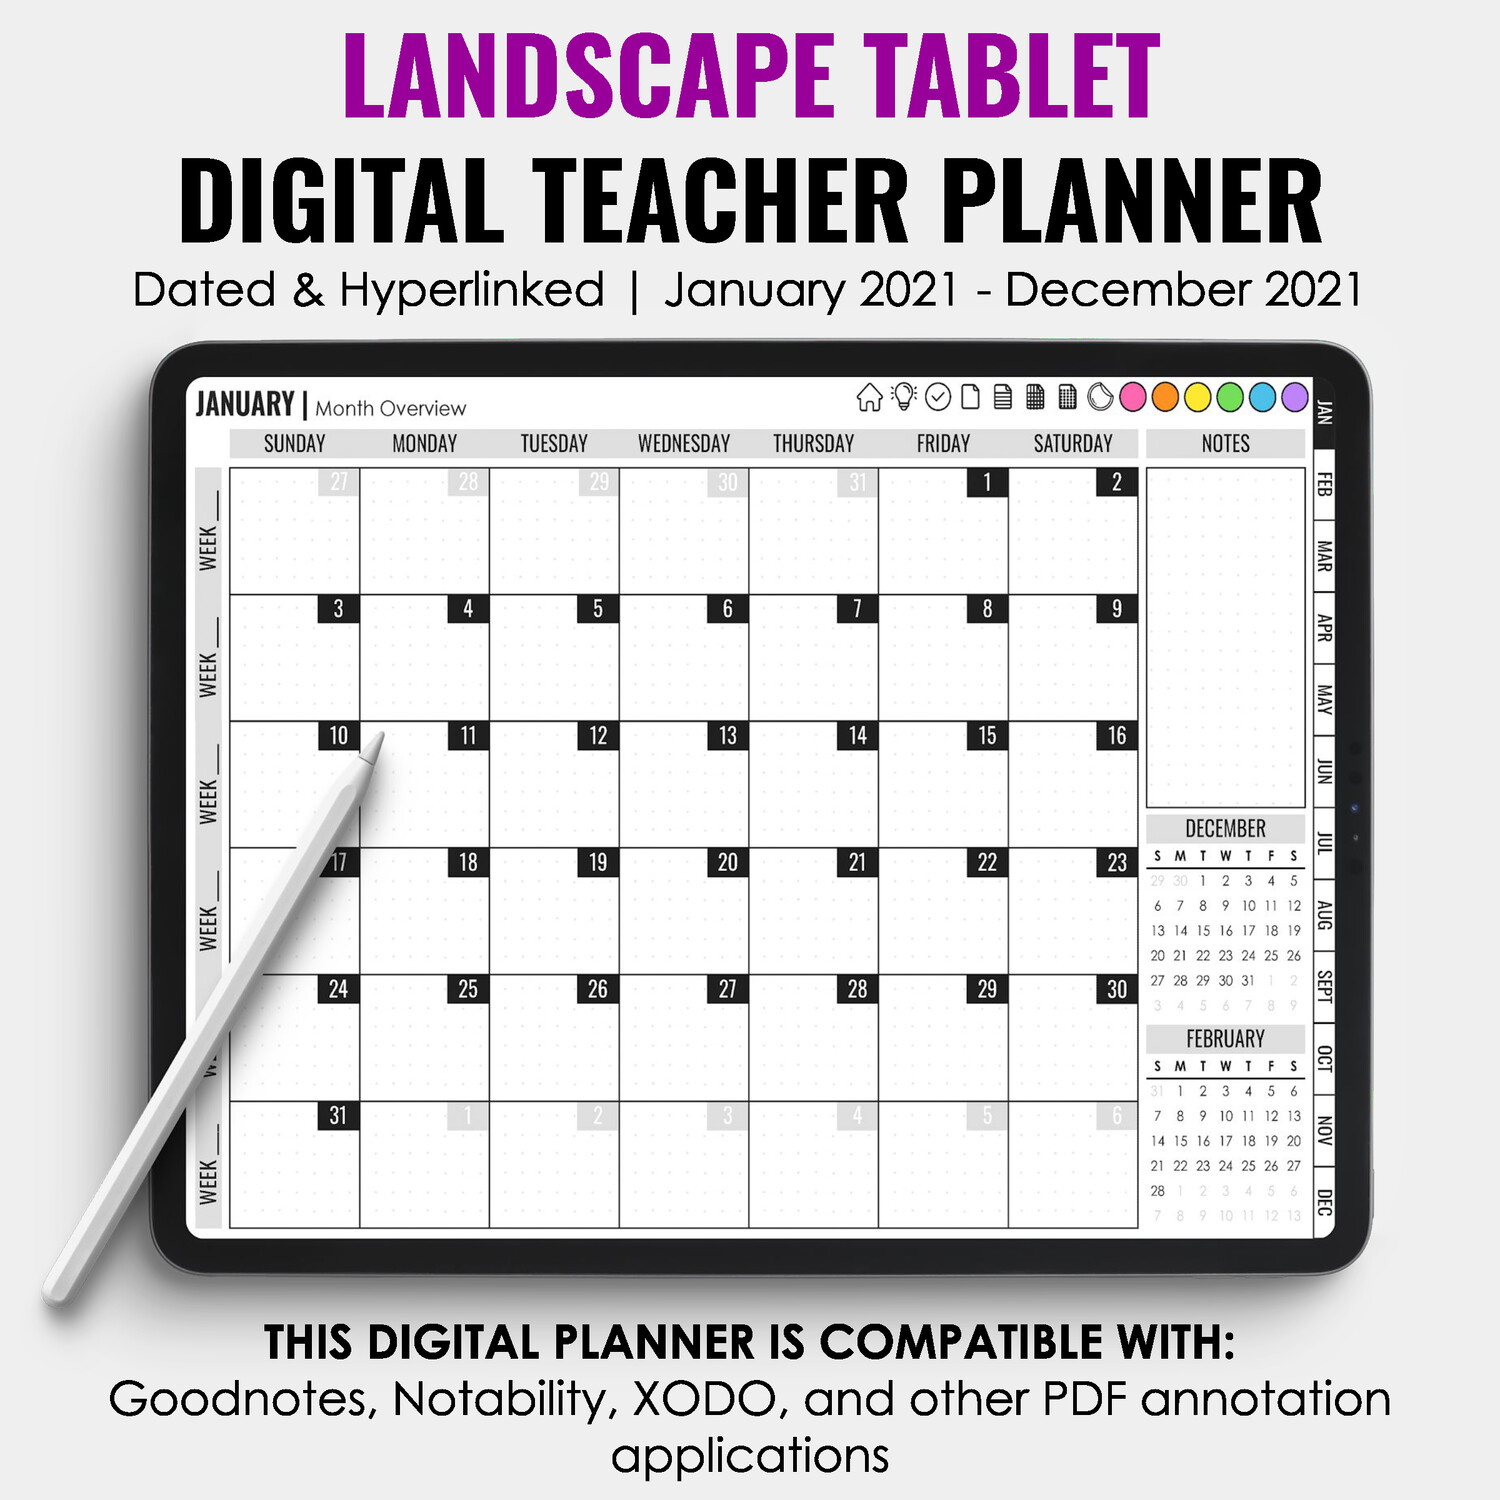 2021 Tablet Digital Teacher Planner | Landscape